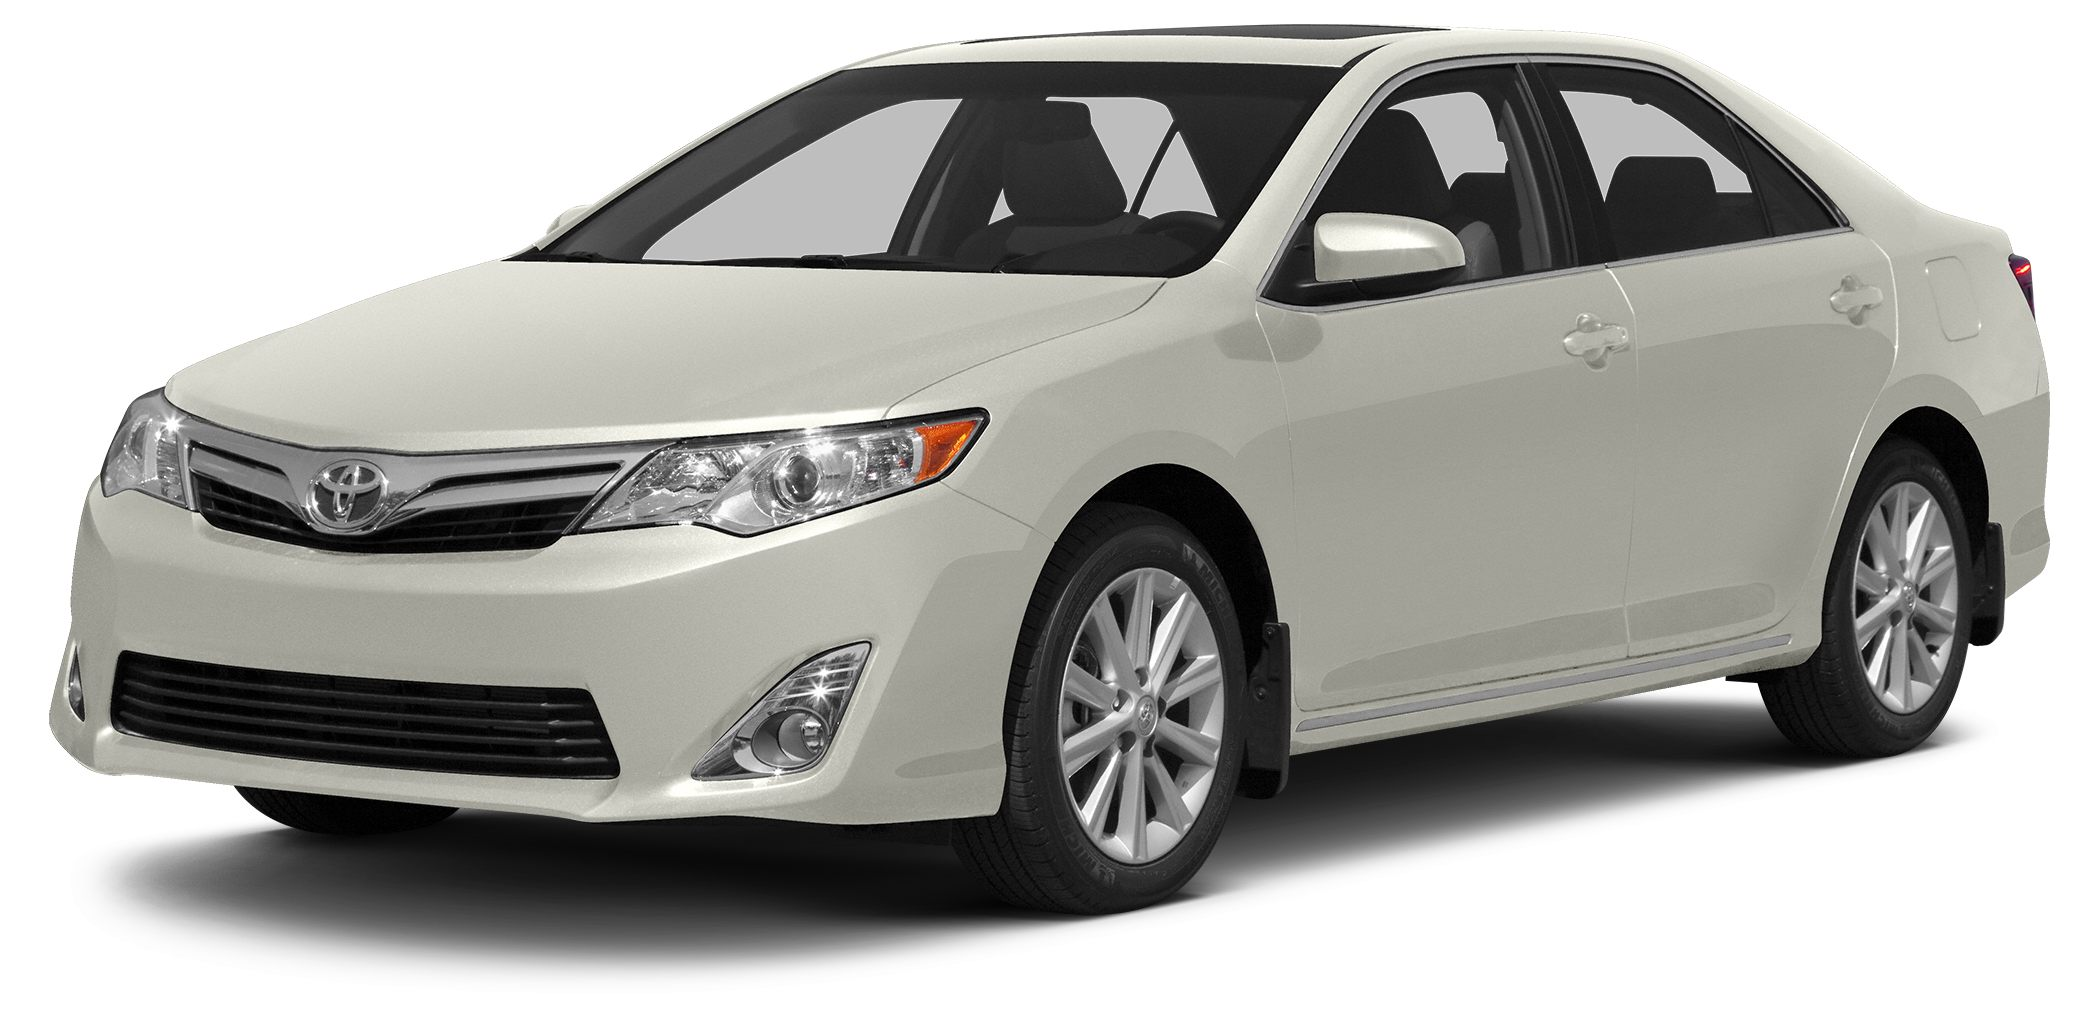 2013 Toyota Camry XLE JUST REPRICED FROM 17985 FUEL EFFICIENT 35 MPG Hwy25 MPG City XLE trim